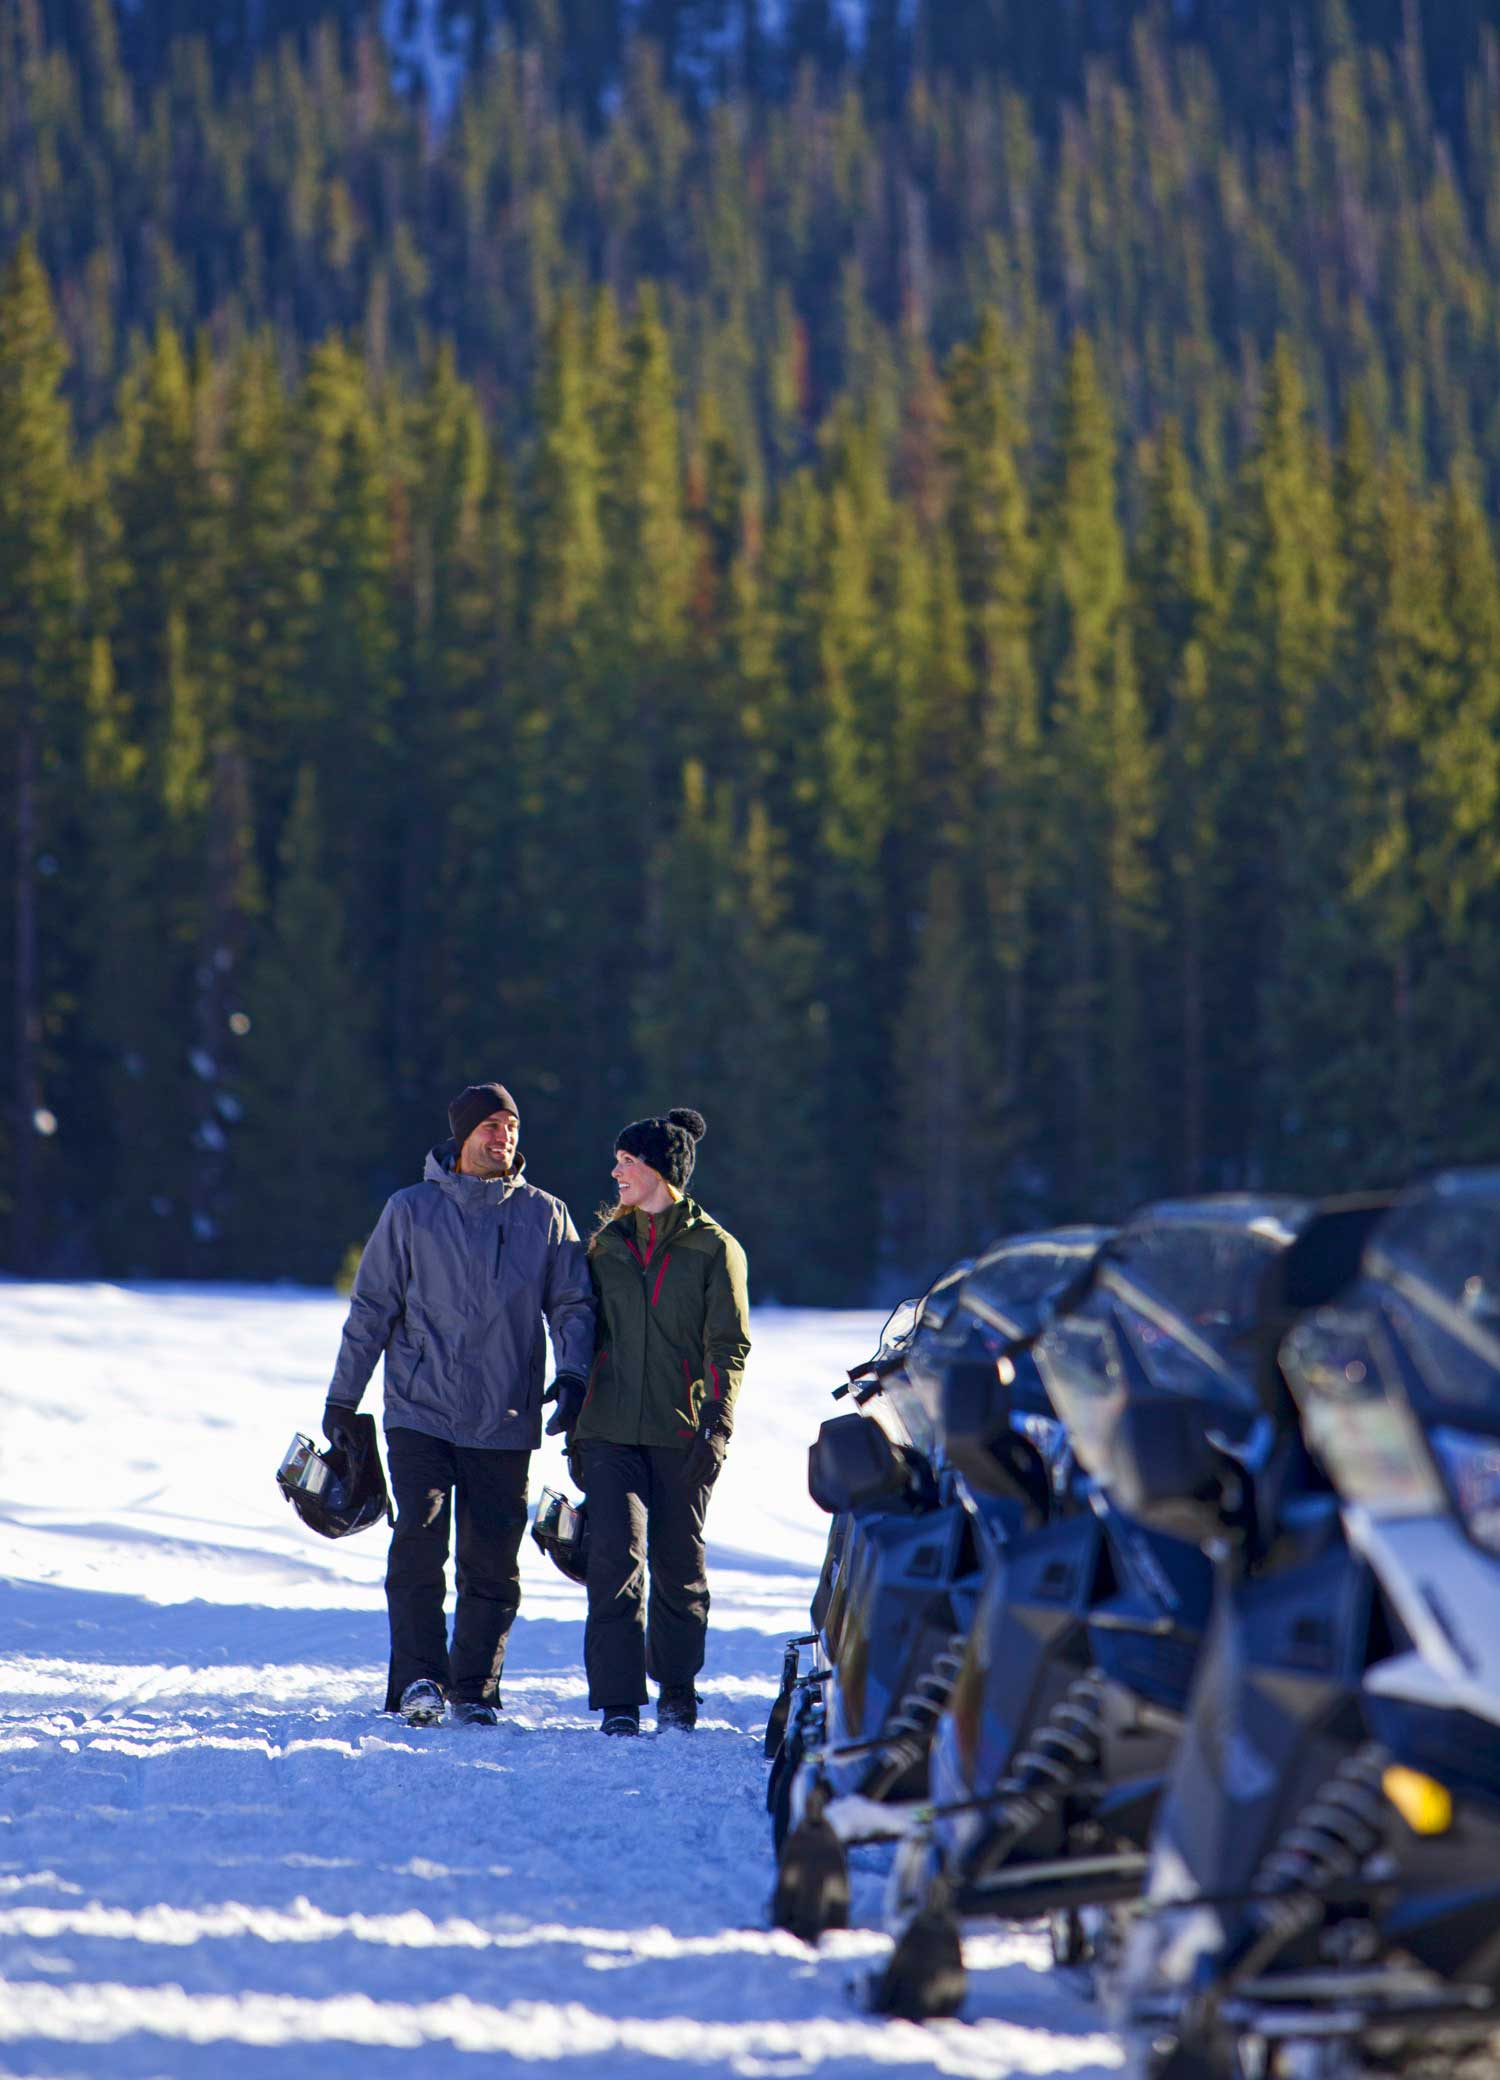 snowmobile-man-woman-couple--walking-to-snowmobile